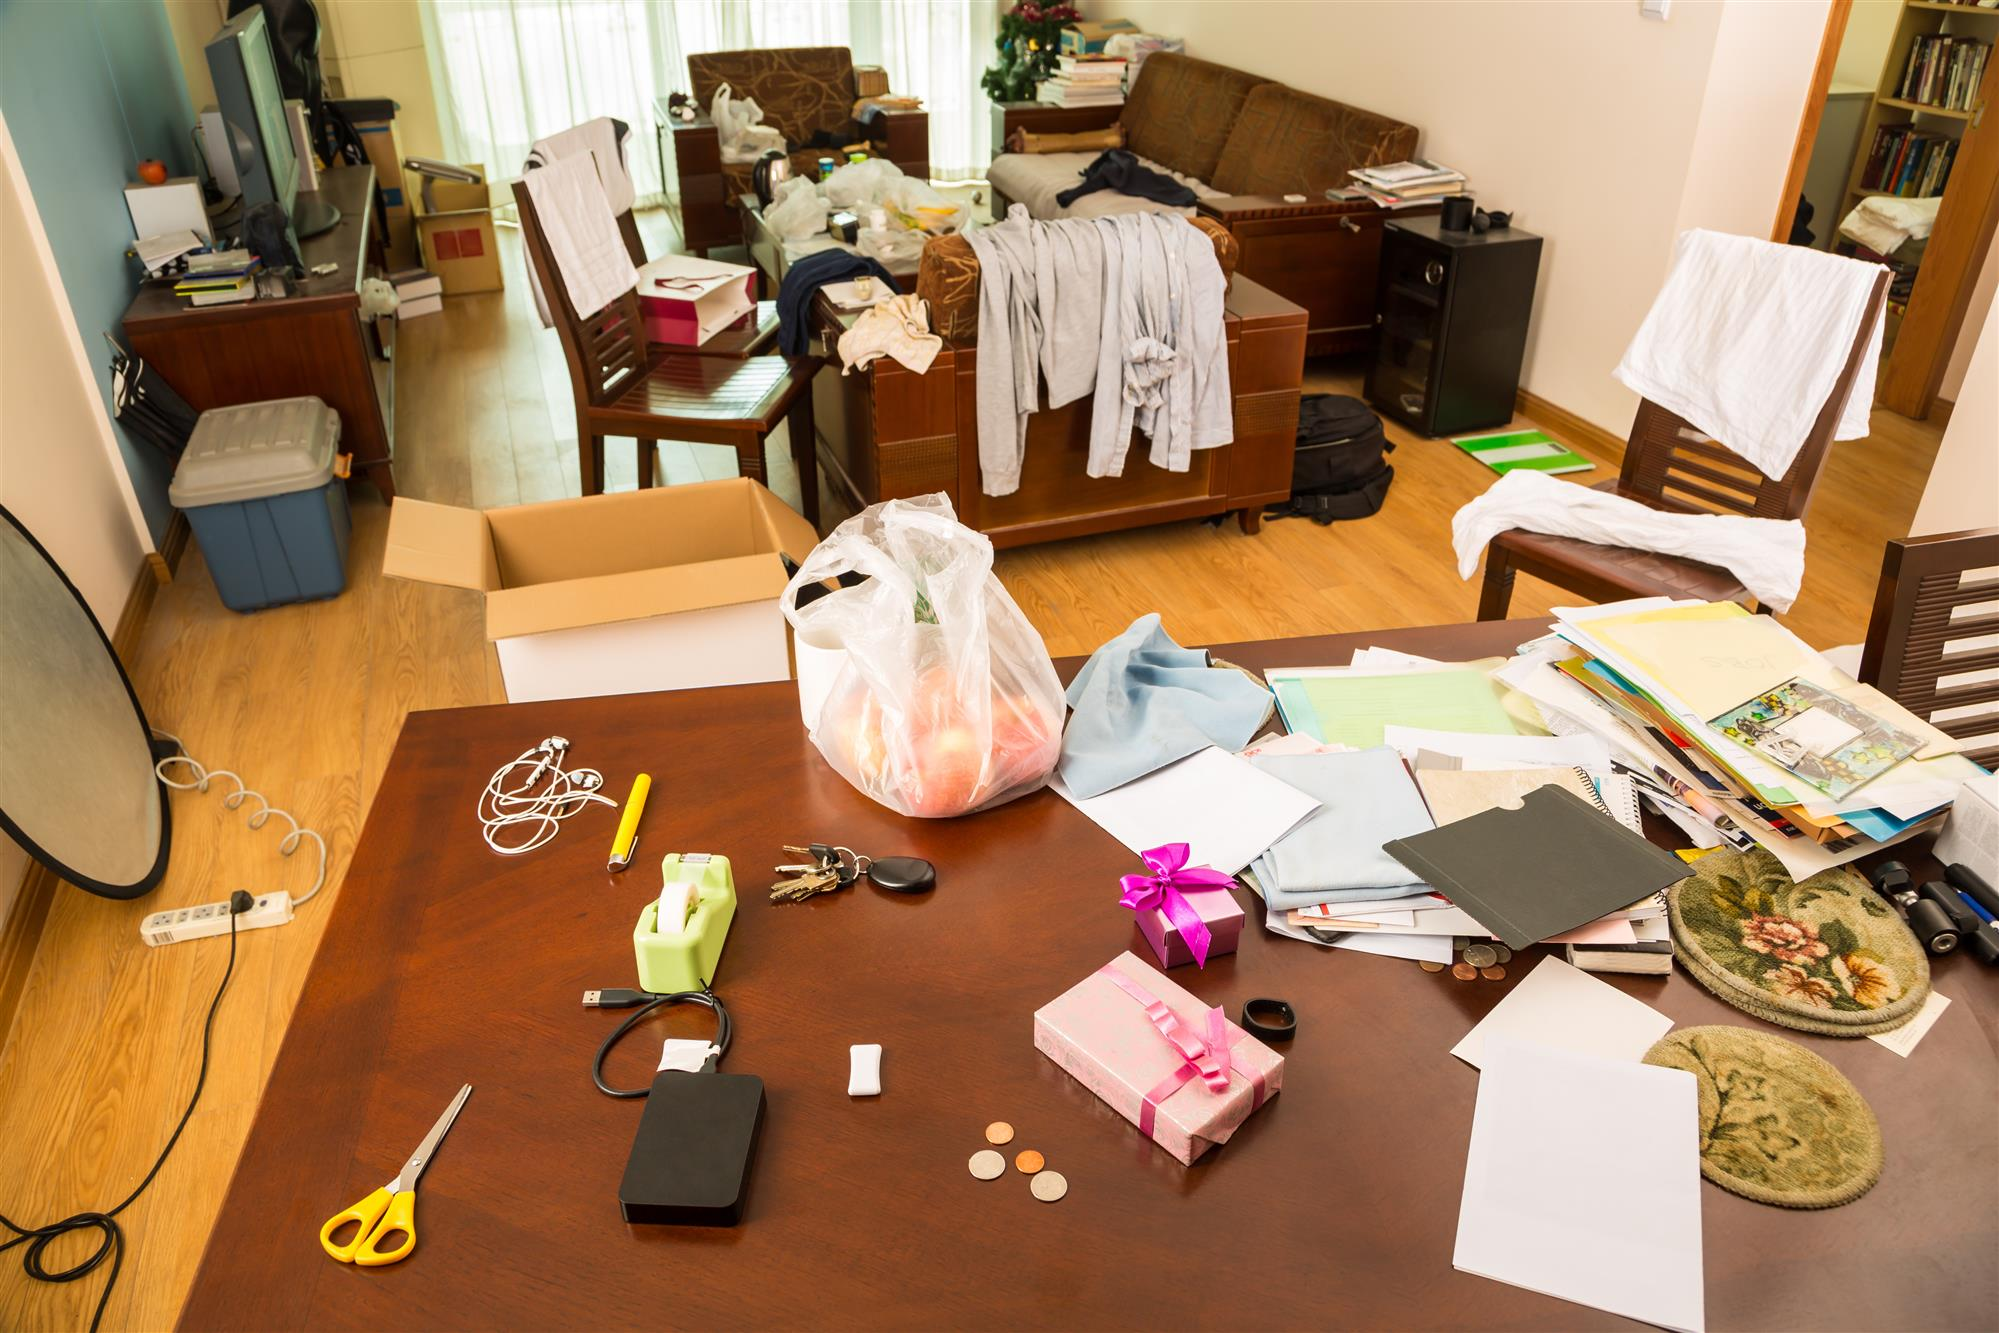 Tips on Organizing/Decluttering Your Home This Winter